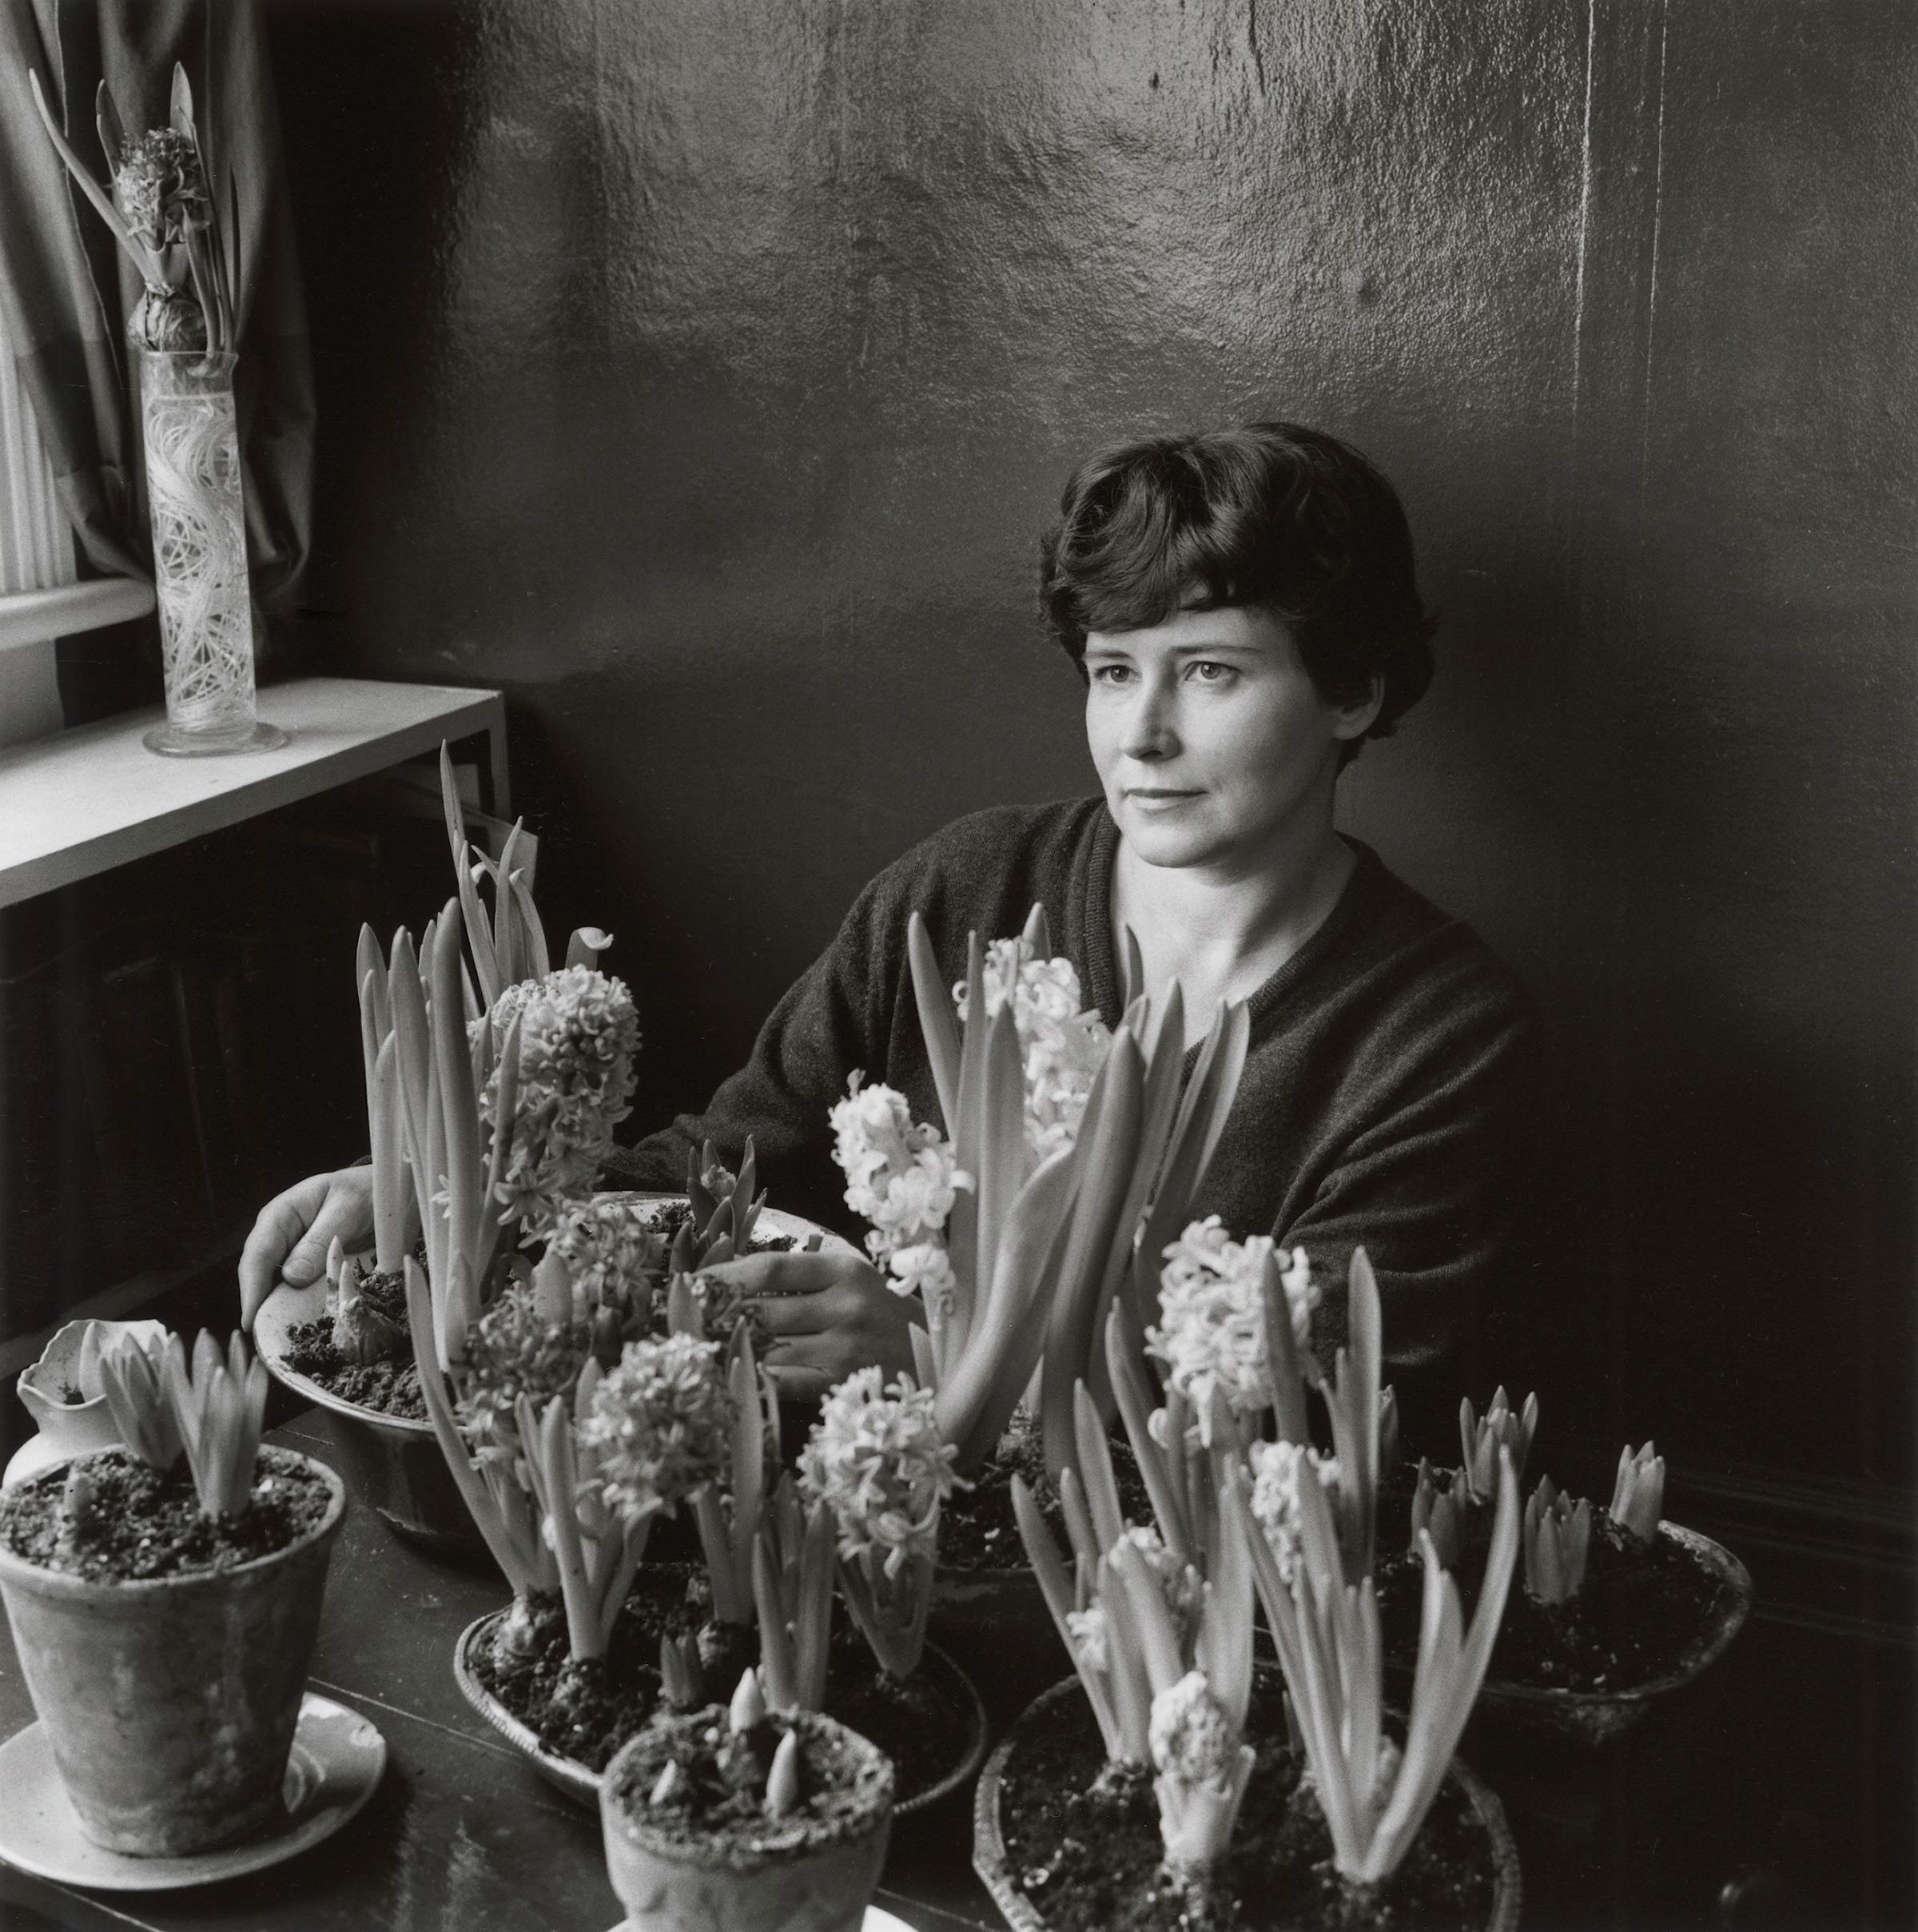 Doris Lessing: A room of one's own